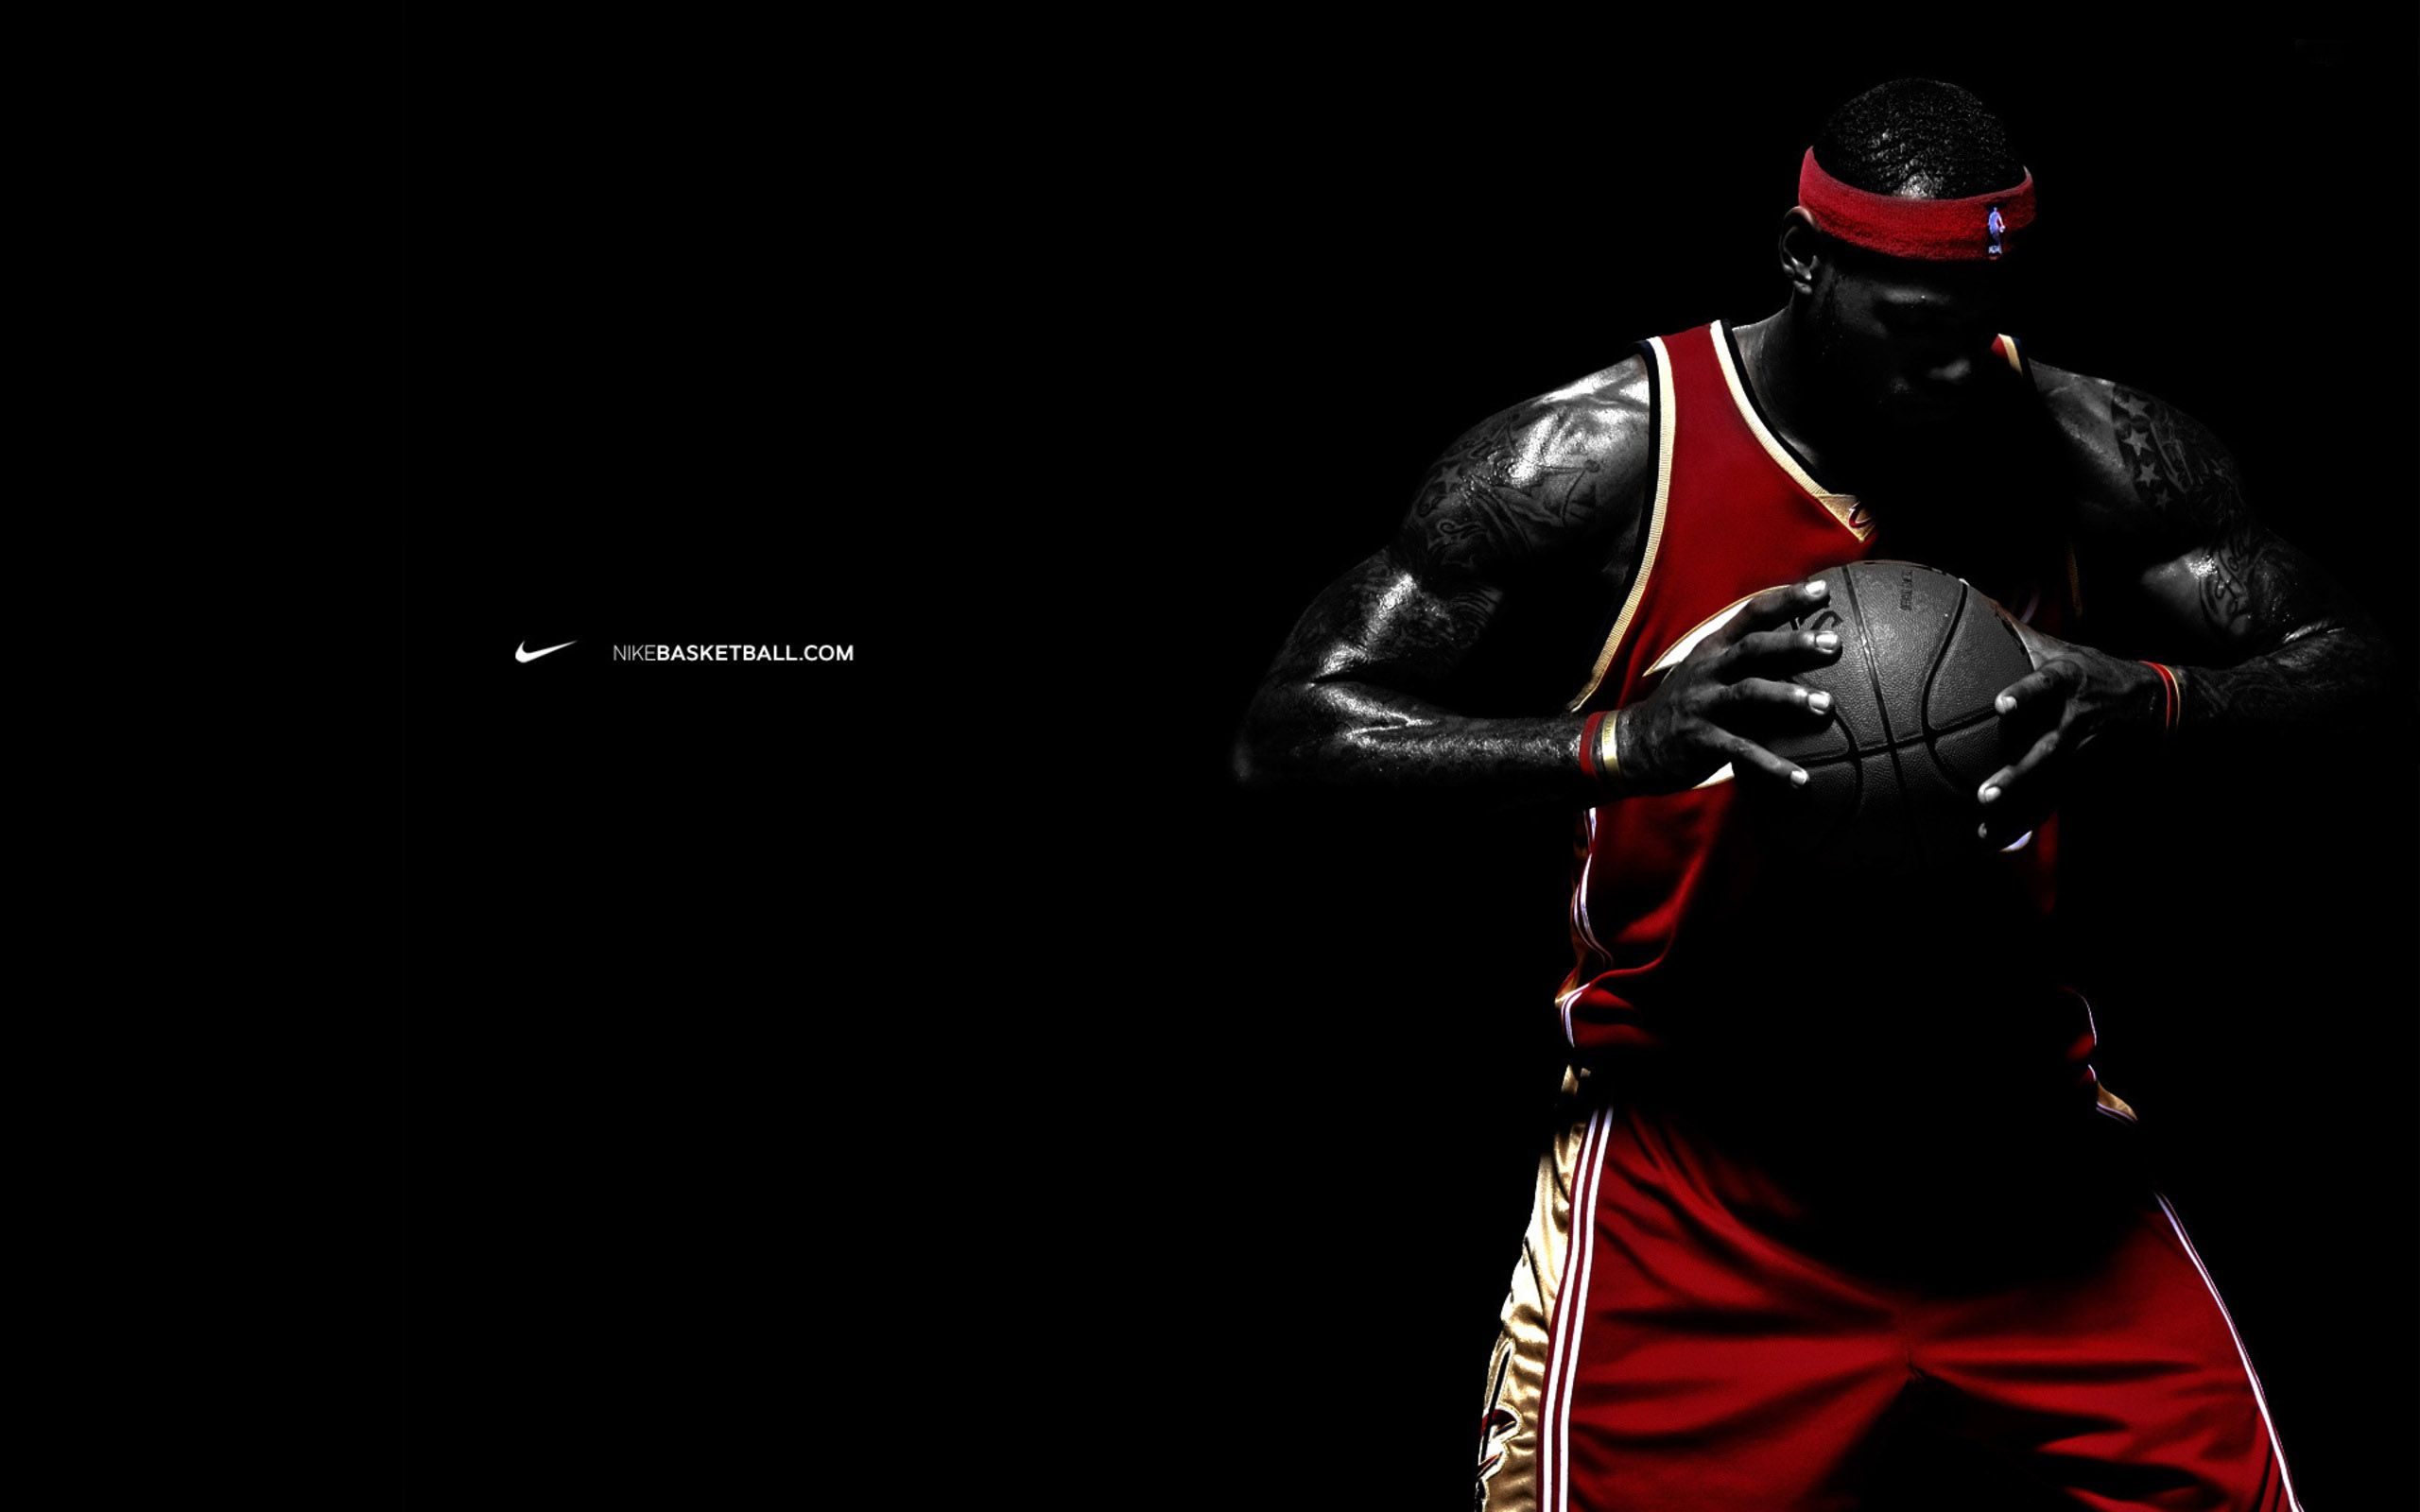 NBA Wallpapers For Android